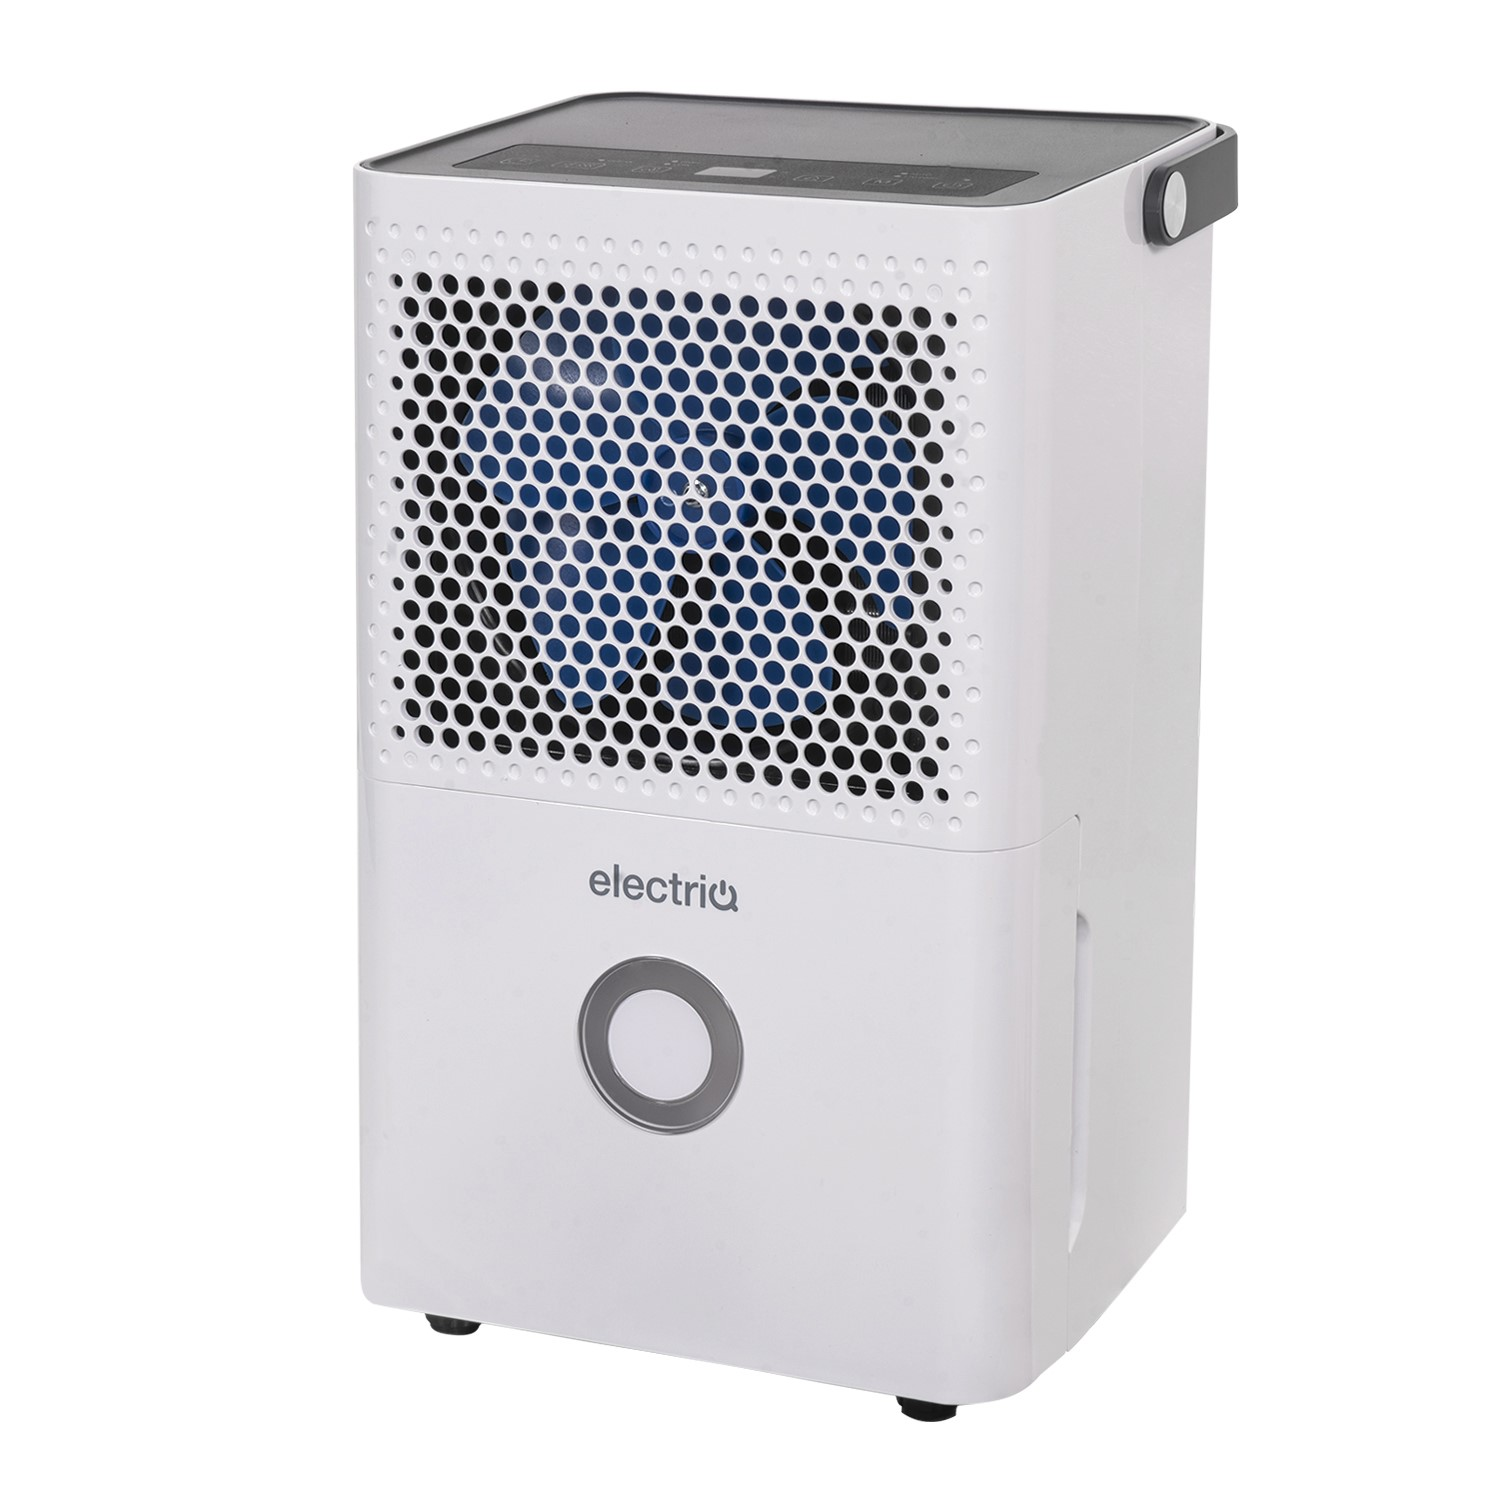 Wonderful ElectriQ Quiet 10 Litre Dehumidifier With Humidistat For Up To 3 Bed House